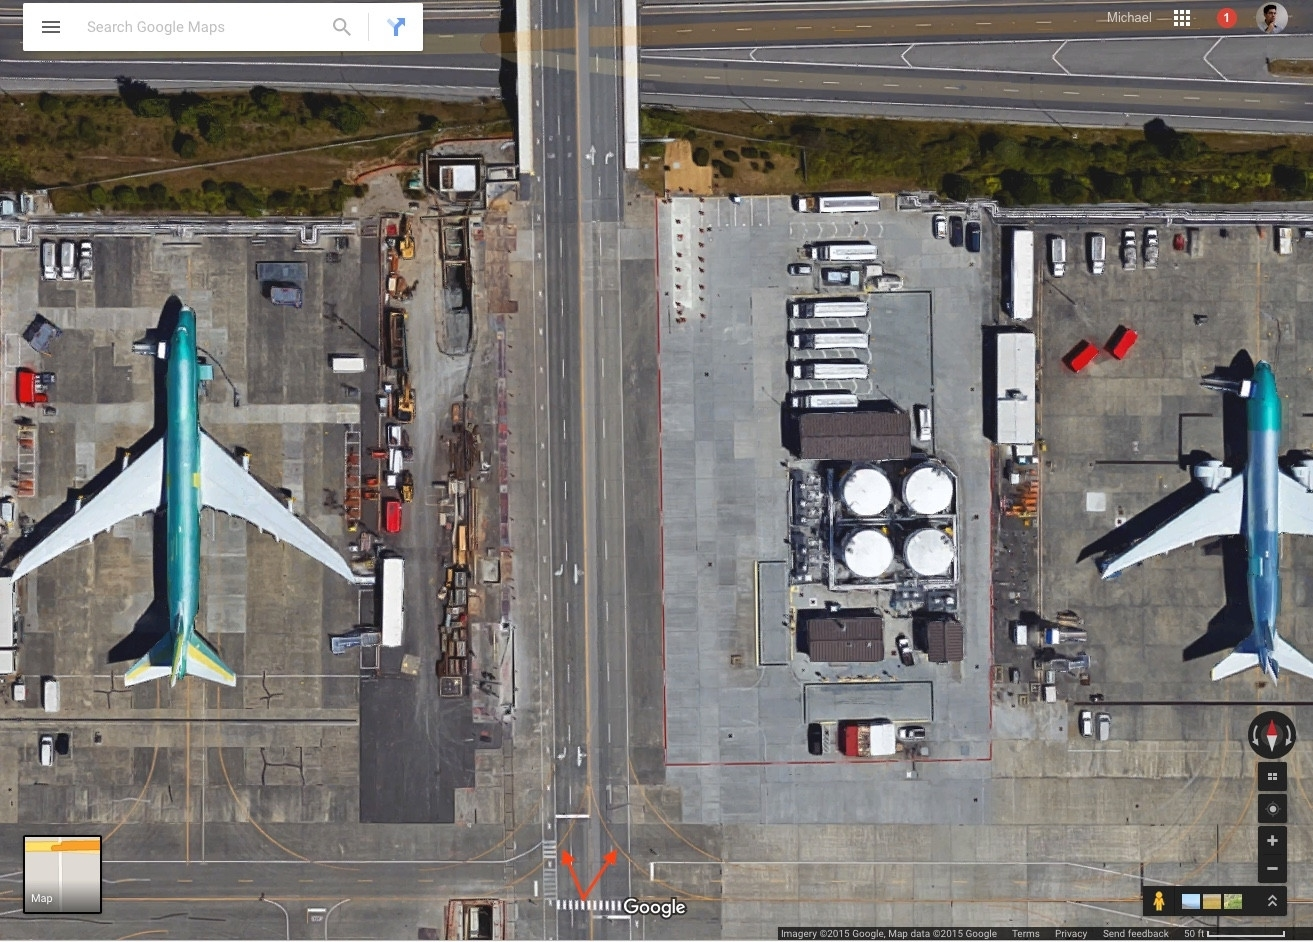 Where Is The Taxiway Between The Boeing Factory And Paine pertaining to Boeing Factory Google Maps